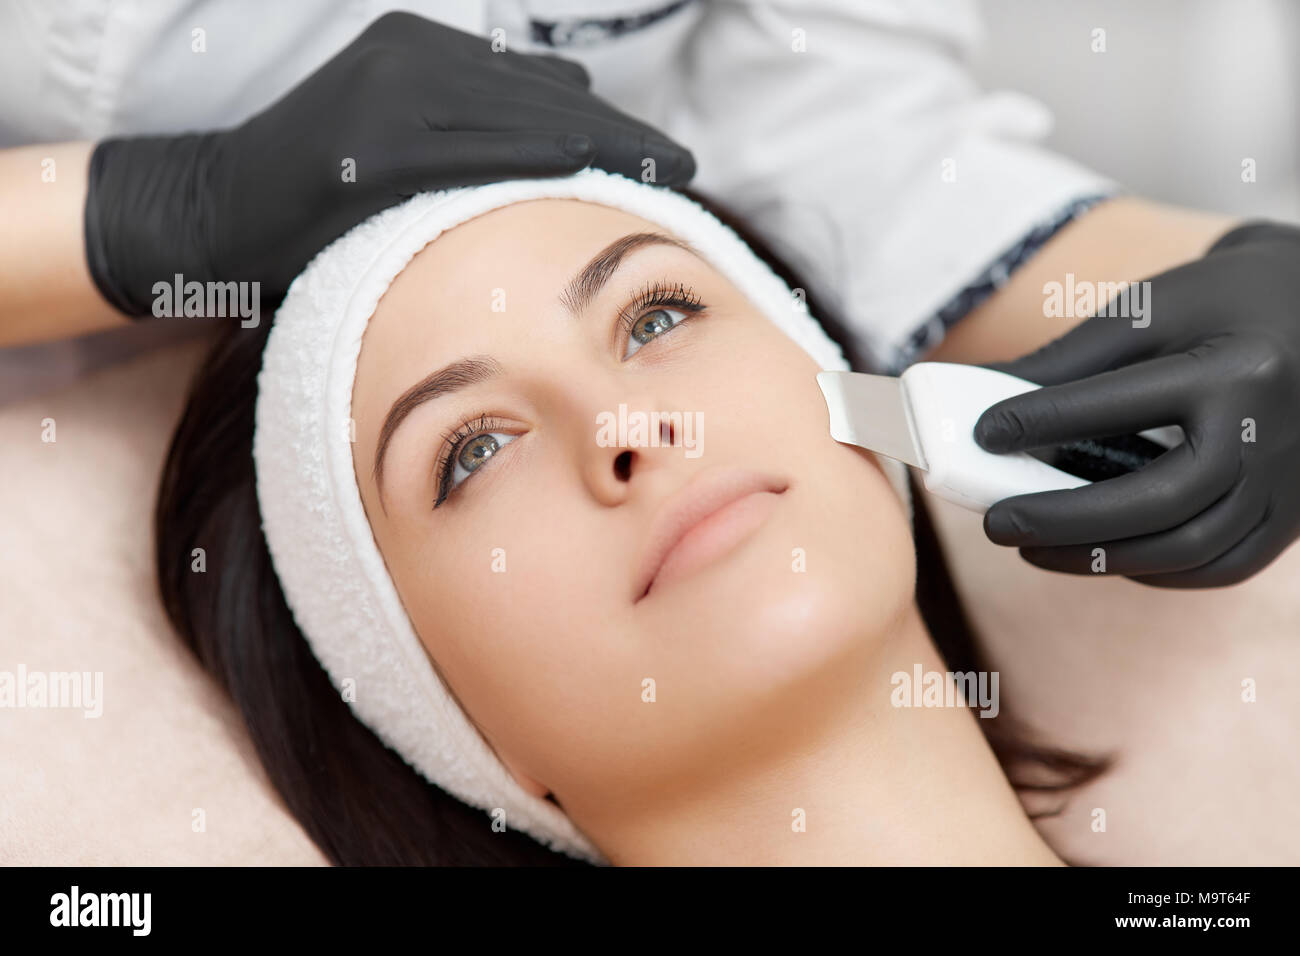 Facial ultrasonic cleaning with special device in beauty salon. - Stock Image